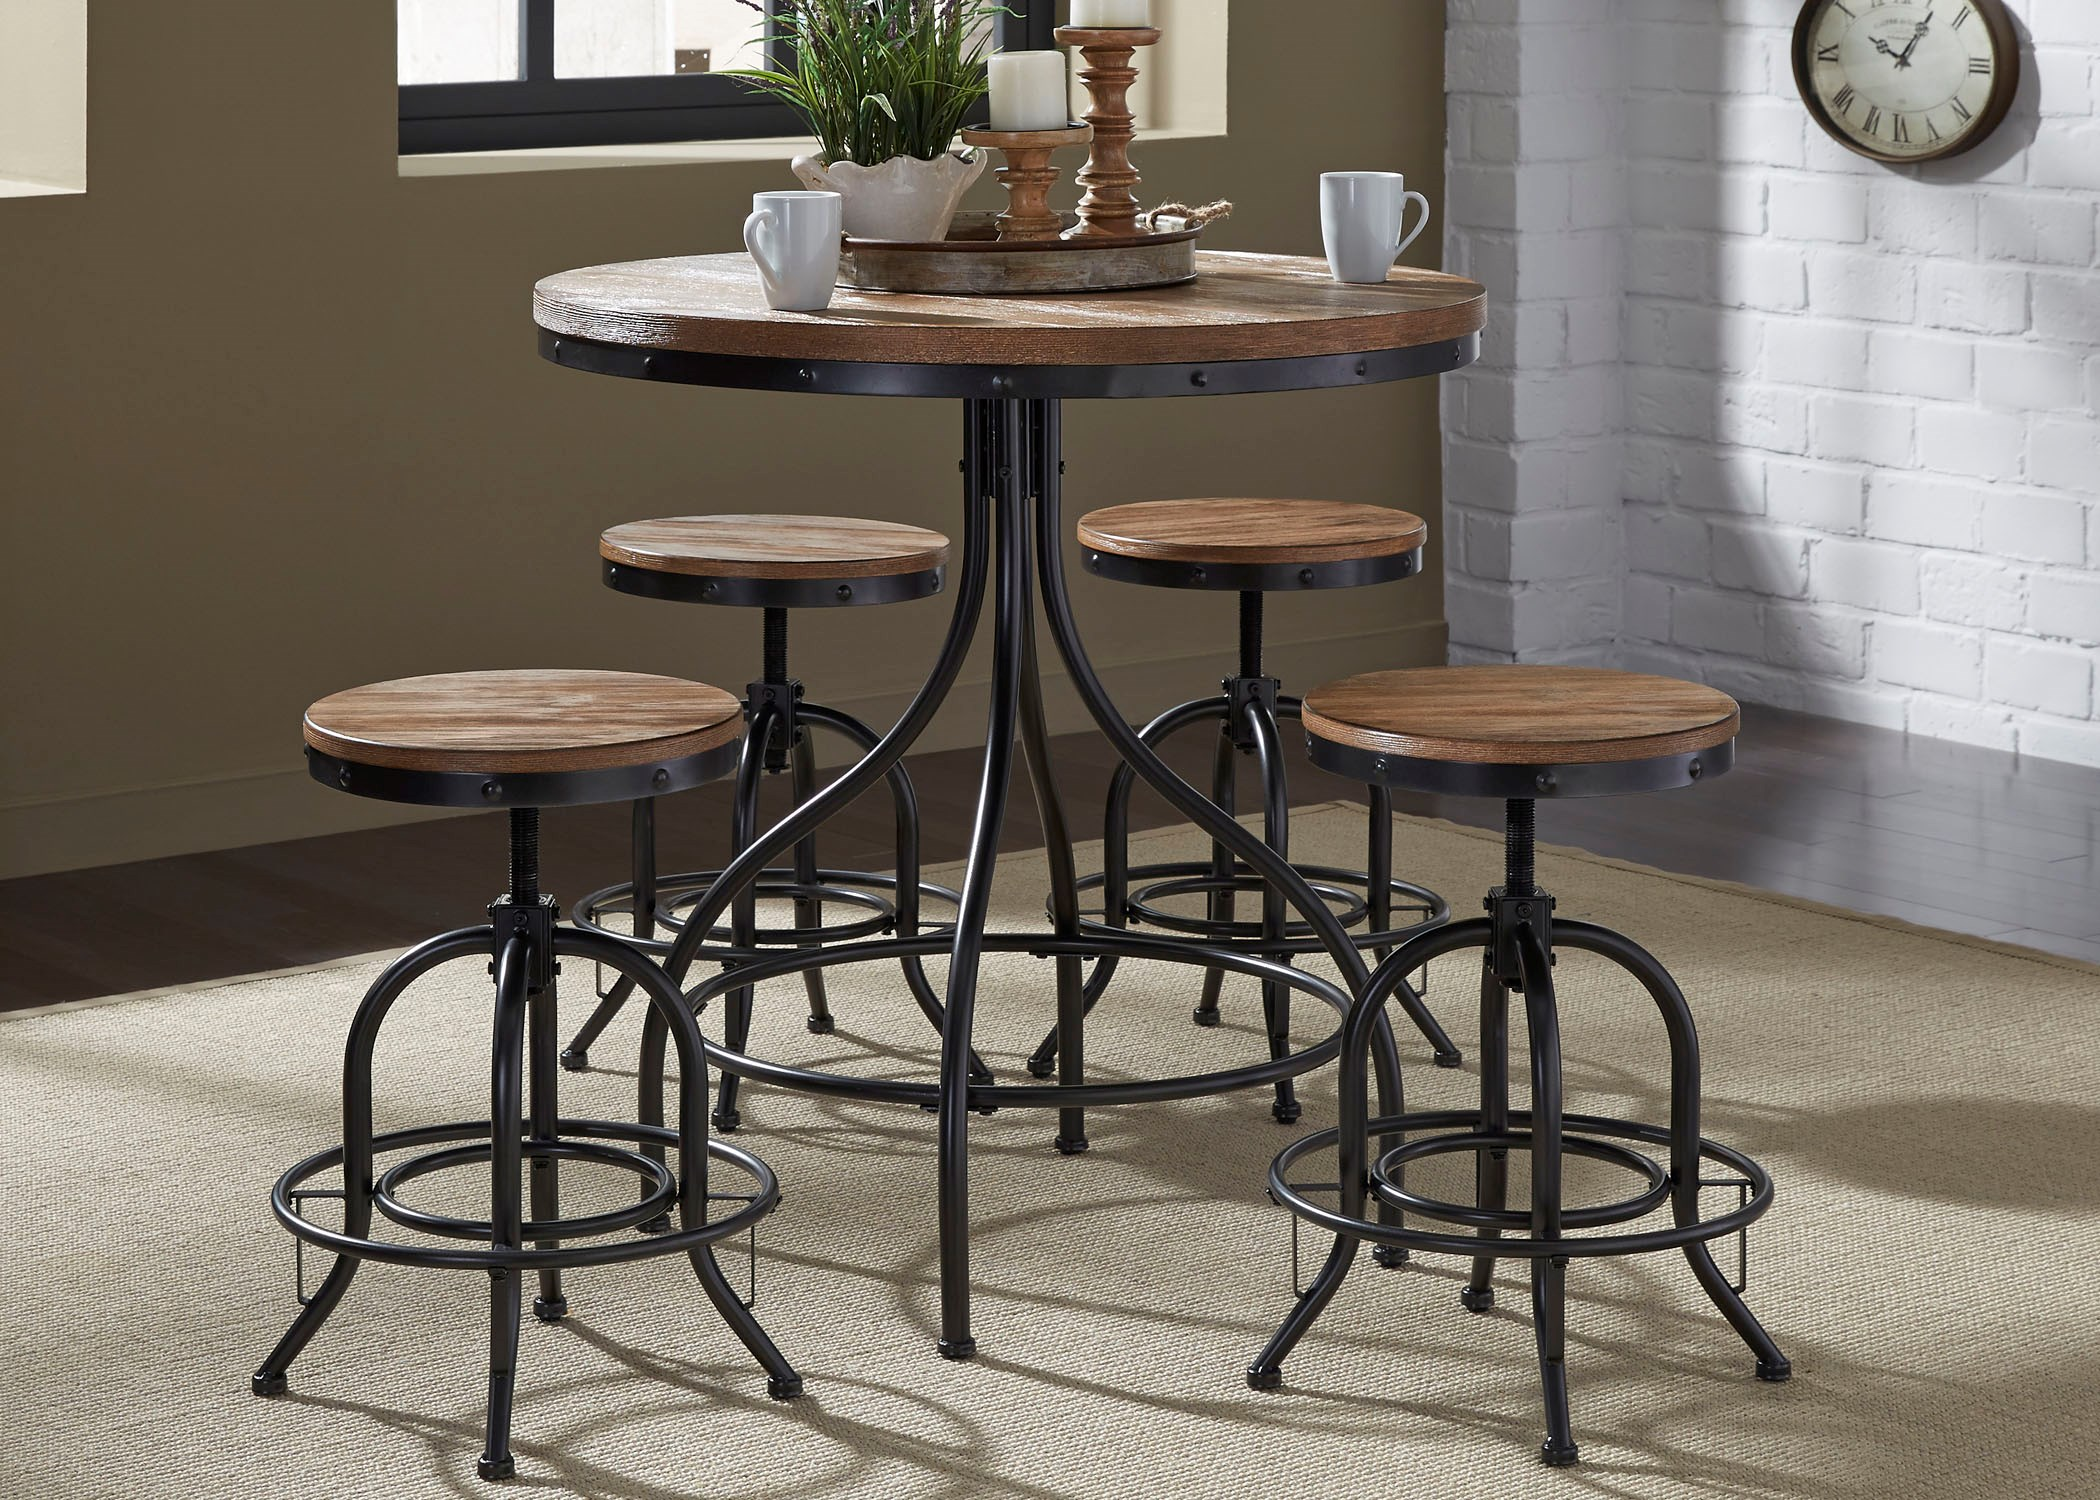 Exceptionnel Liberty Furniture Vintage Dining Series 5 Piece Pub Table And Bar Stool Set